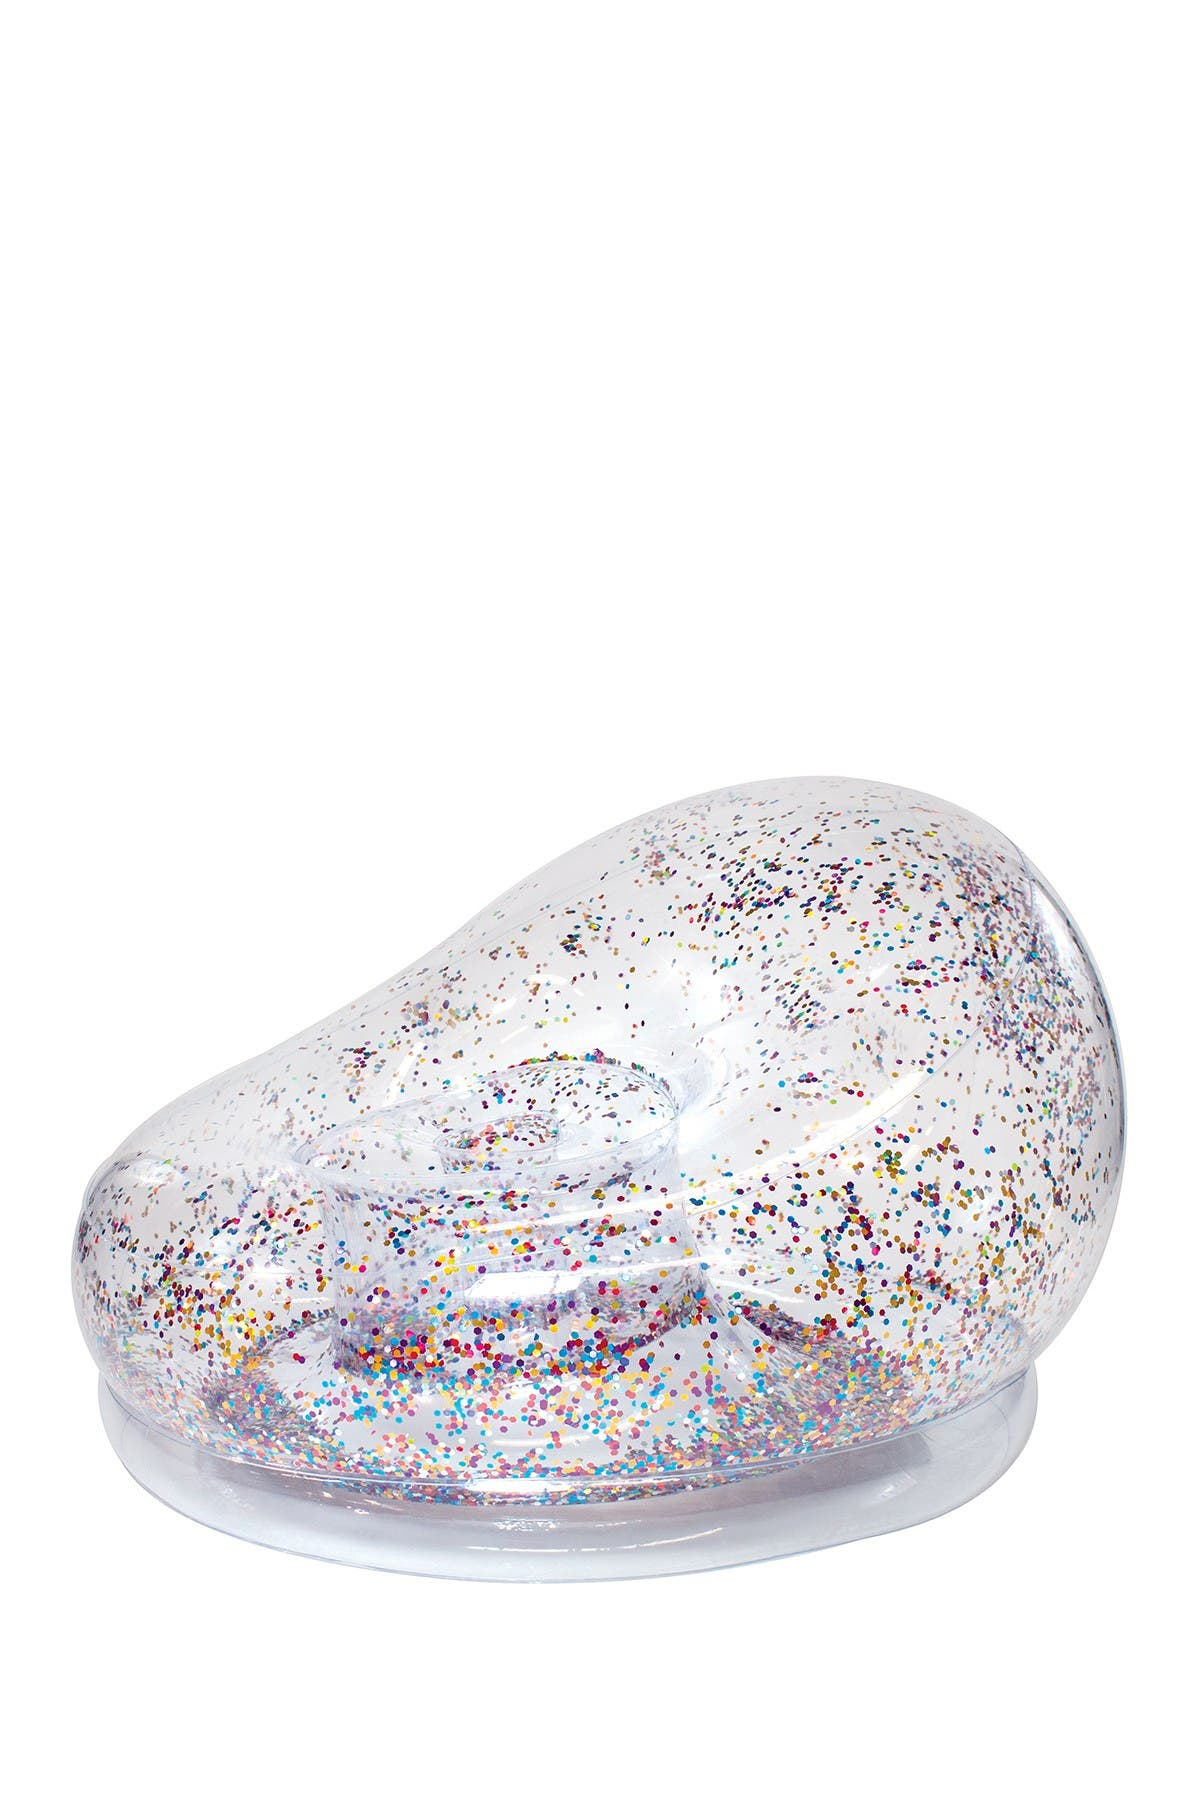 Image of POOLCANDY AirCandy Multicolor Holographic Glitter Chair